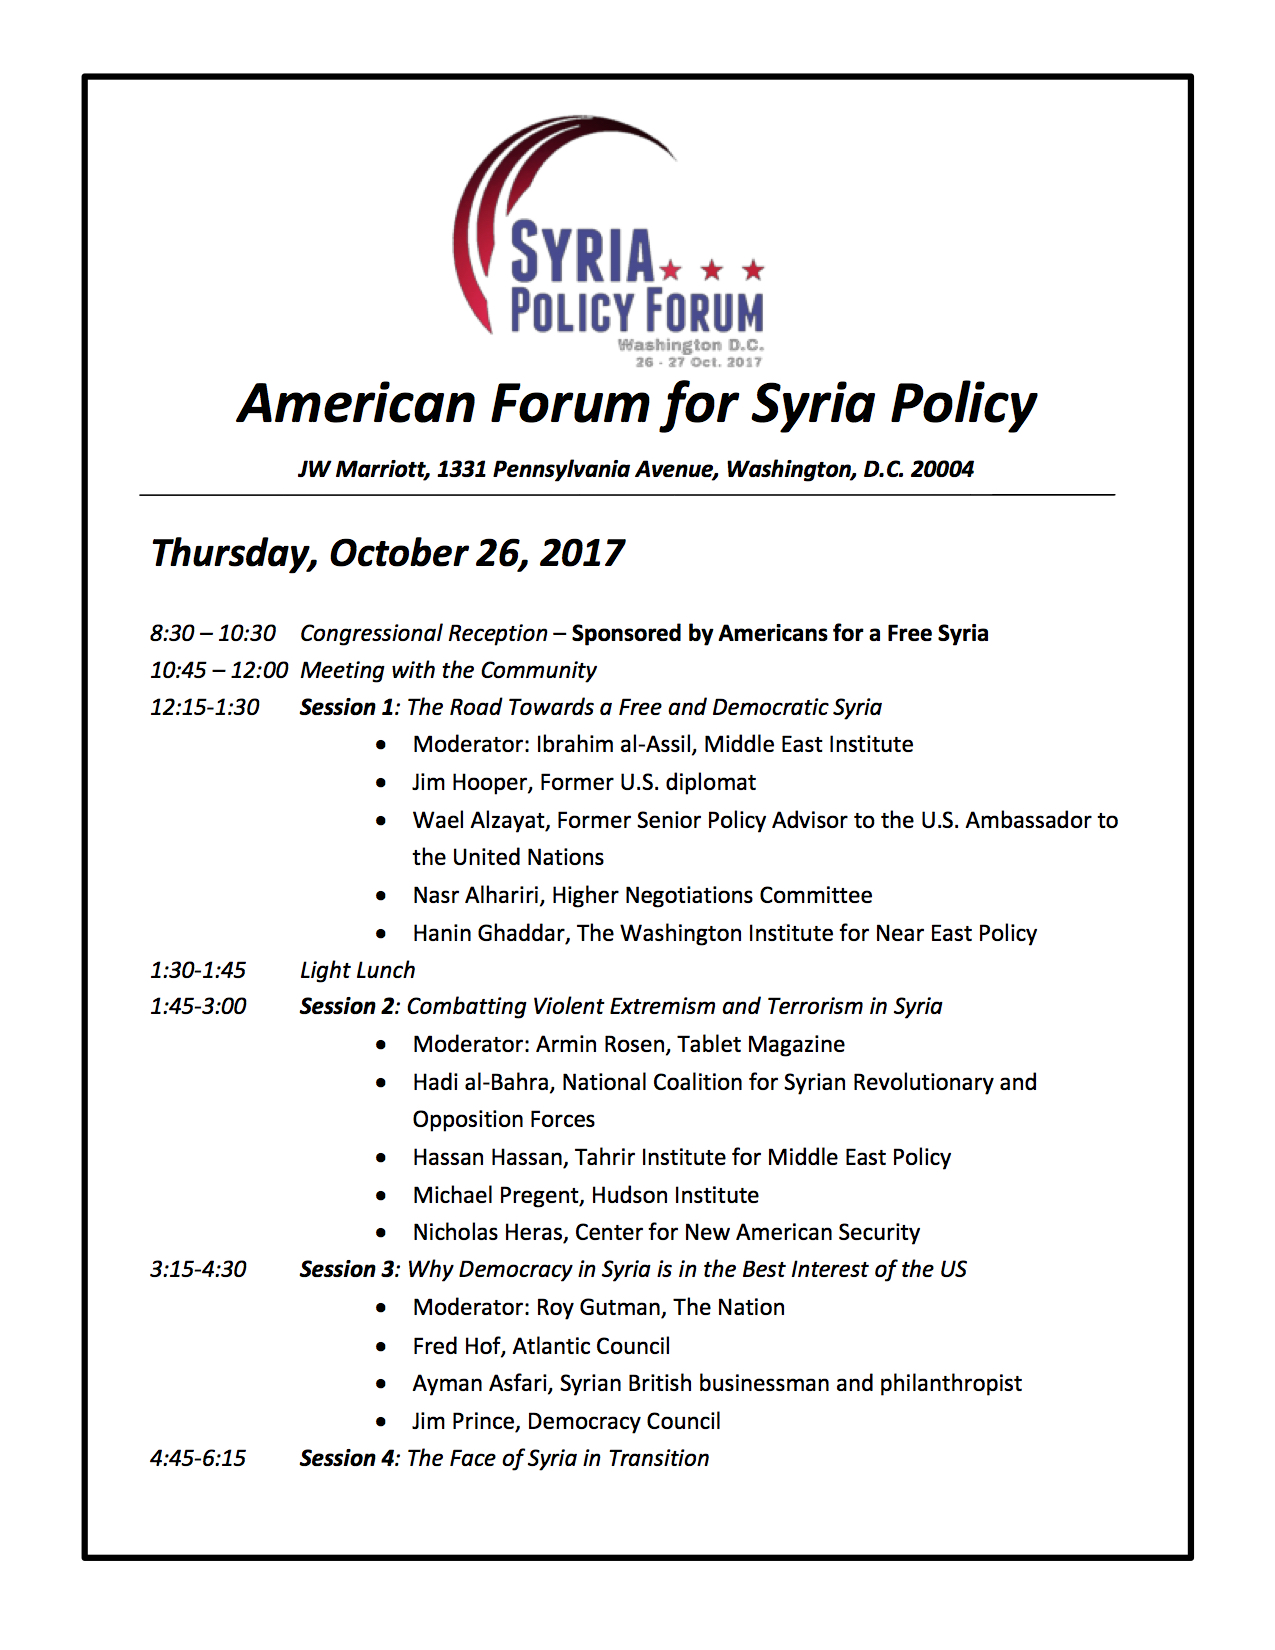 Syria Policy Forum - Agenda with Speakers.jpg